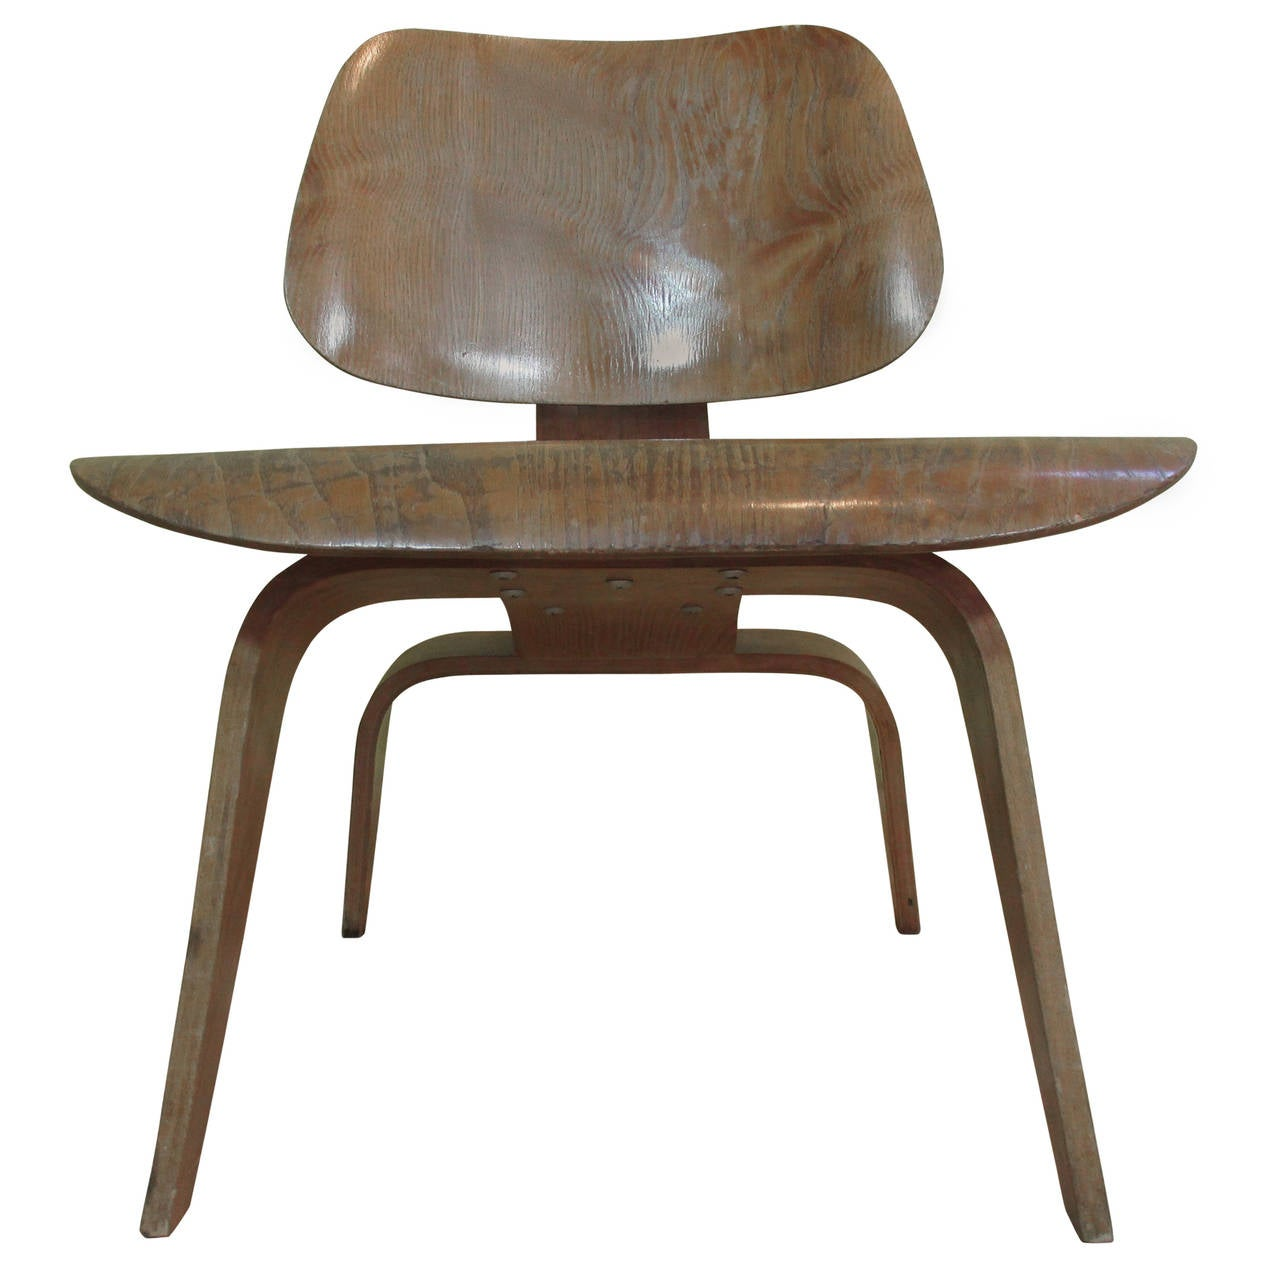 Eames LCW Molded Plywood Lounge Chair Evans For Sale at 1stdibs